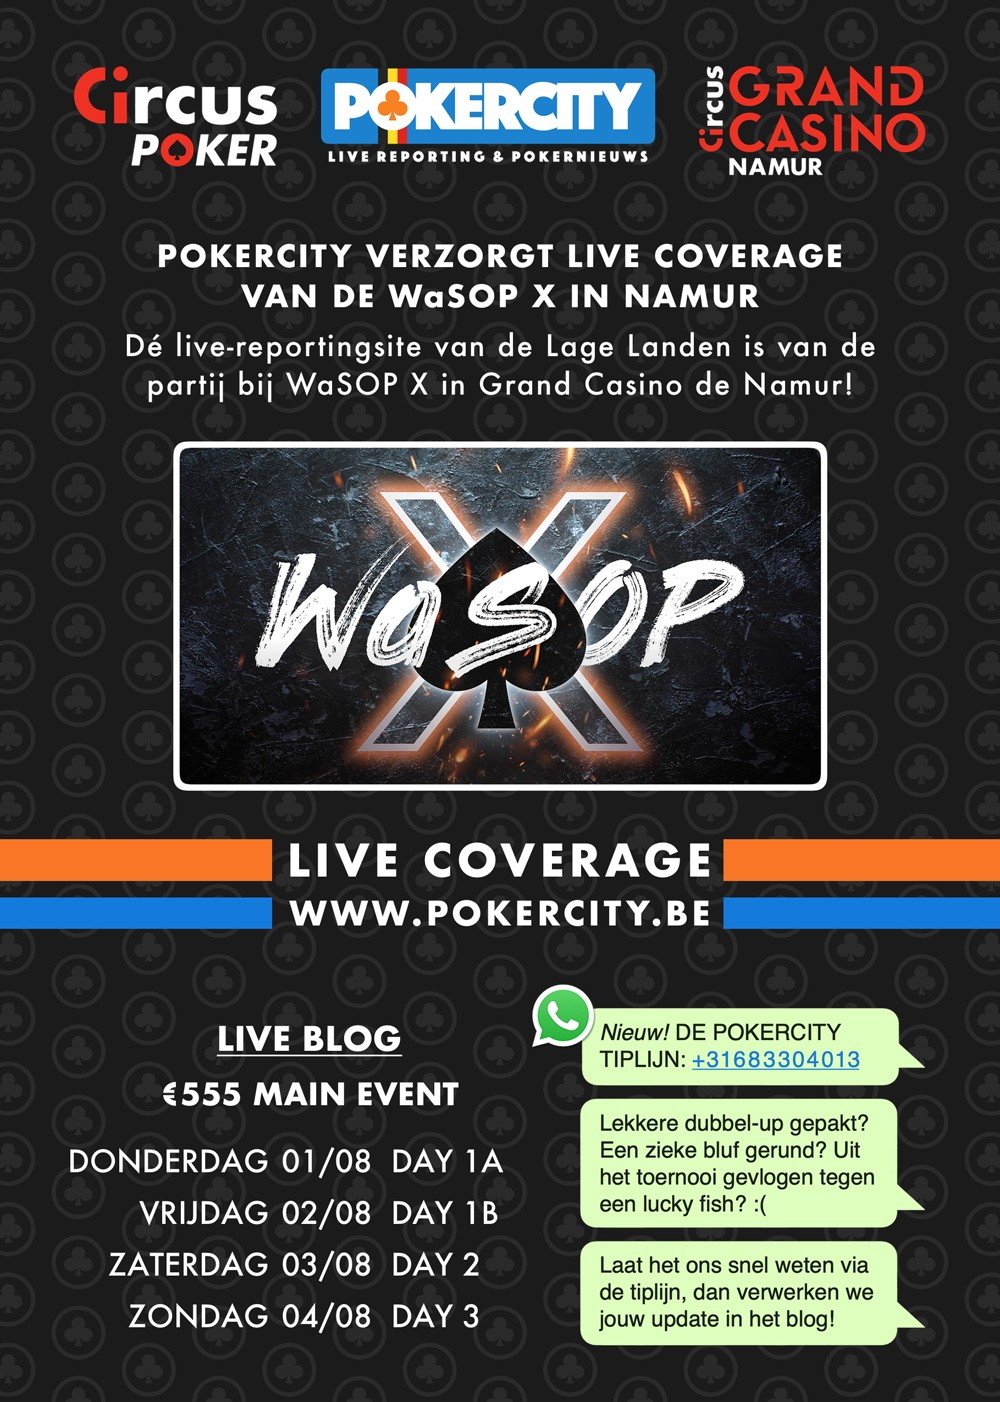 https://www.pokercity.nl/wp-content/uploads/2019/07/wasop-x-aug19-back.jpg